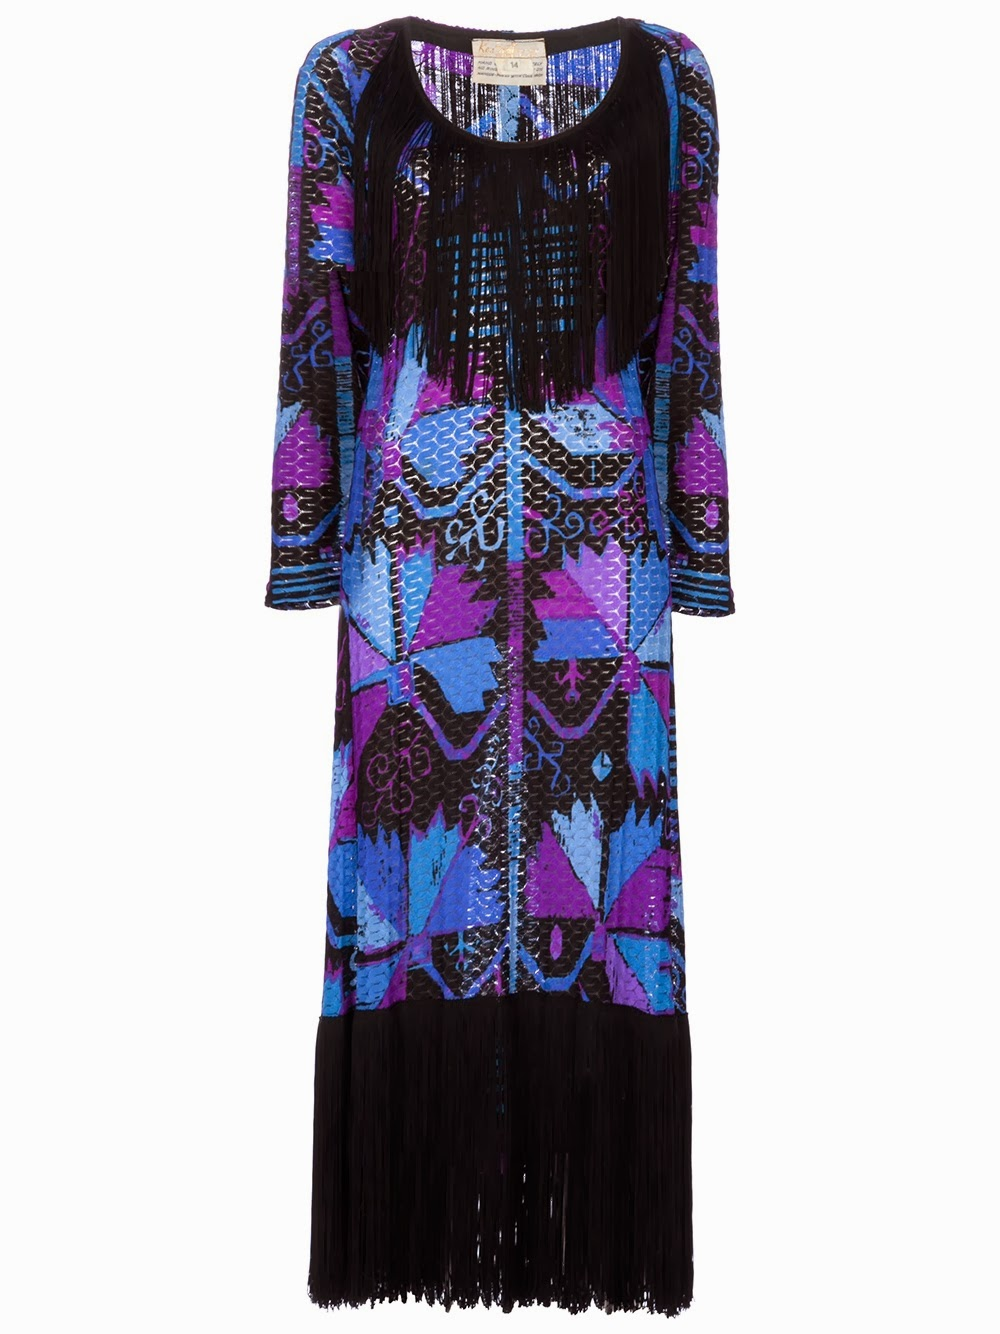 long multimulti  coloured dress with heavy black fringing on the bodice and hem